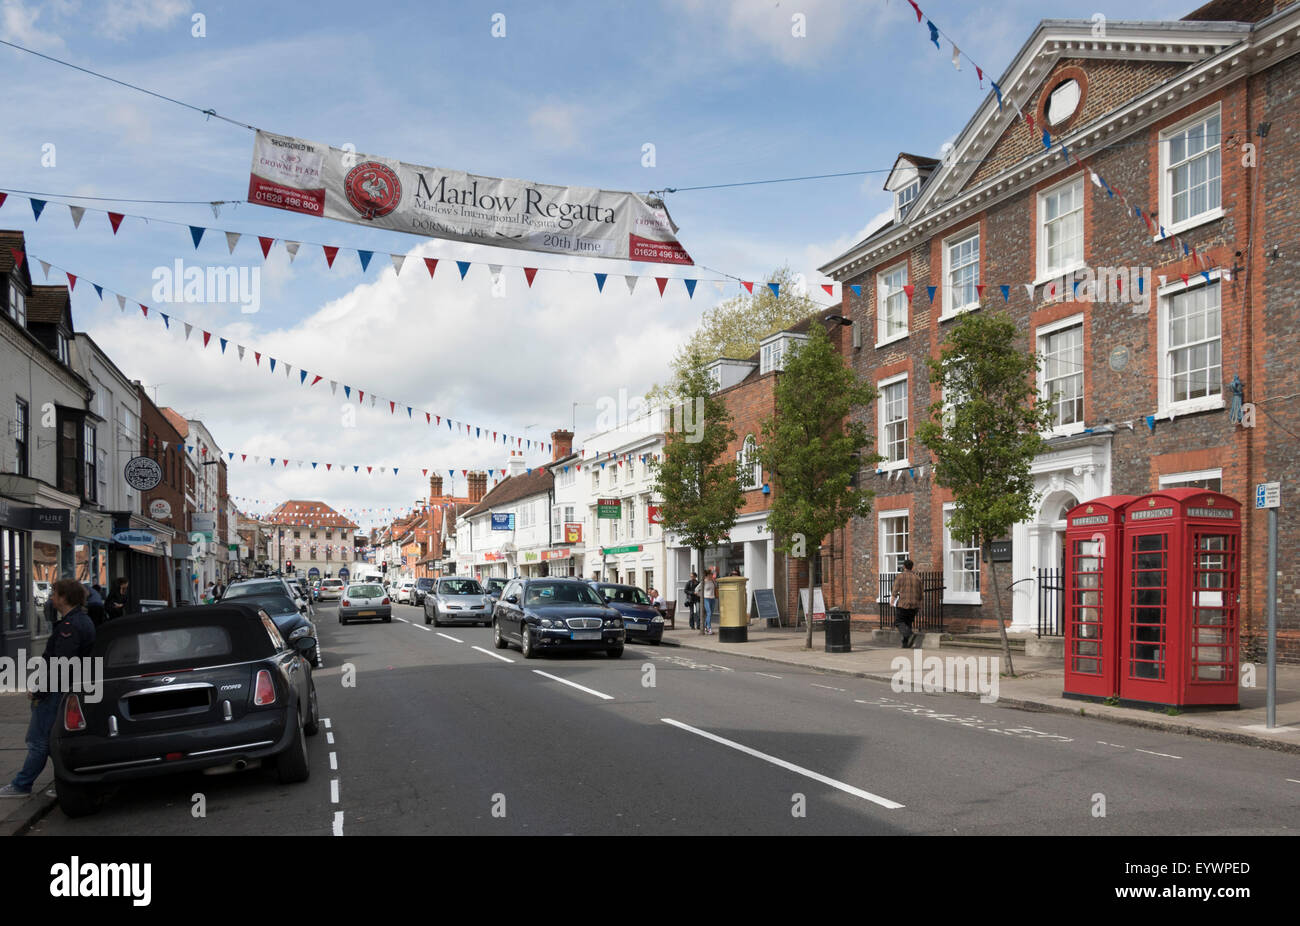 Old Post Office Building and High Street, Marlow, Buckinghamshire, England, United Kingdom, Europe Stock Photo